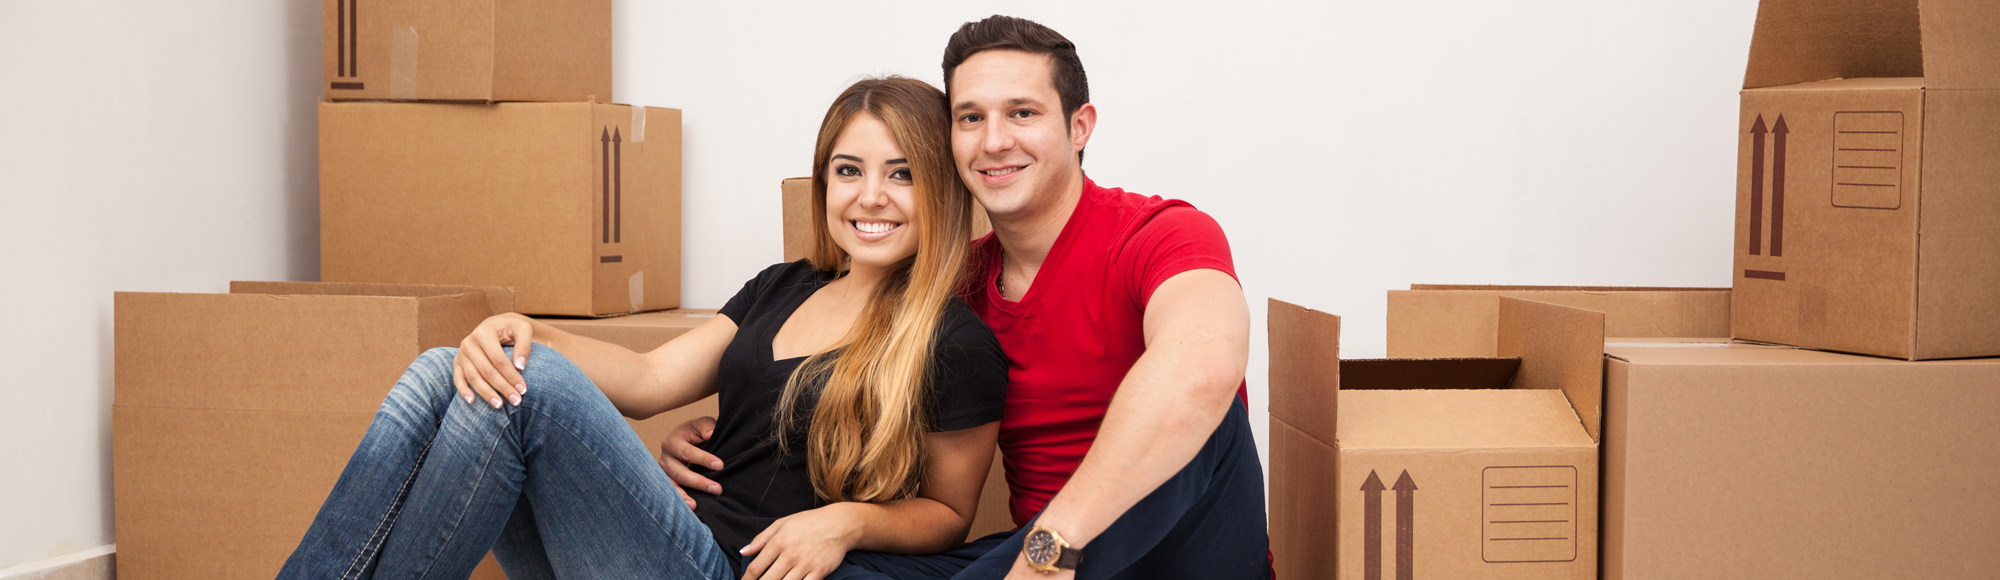 Cute Hispanic young couple moving to their new home and unpacking